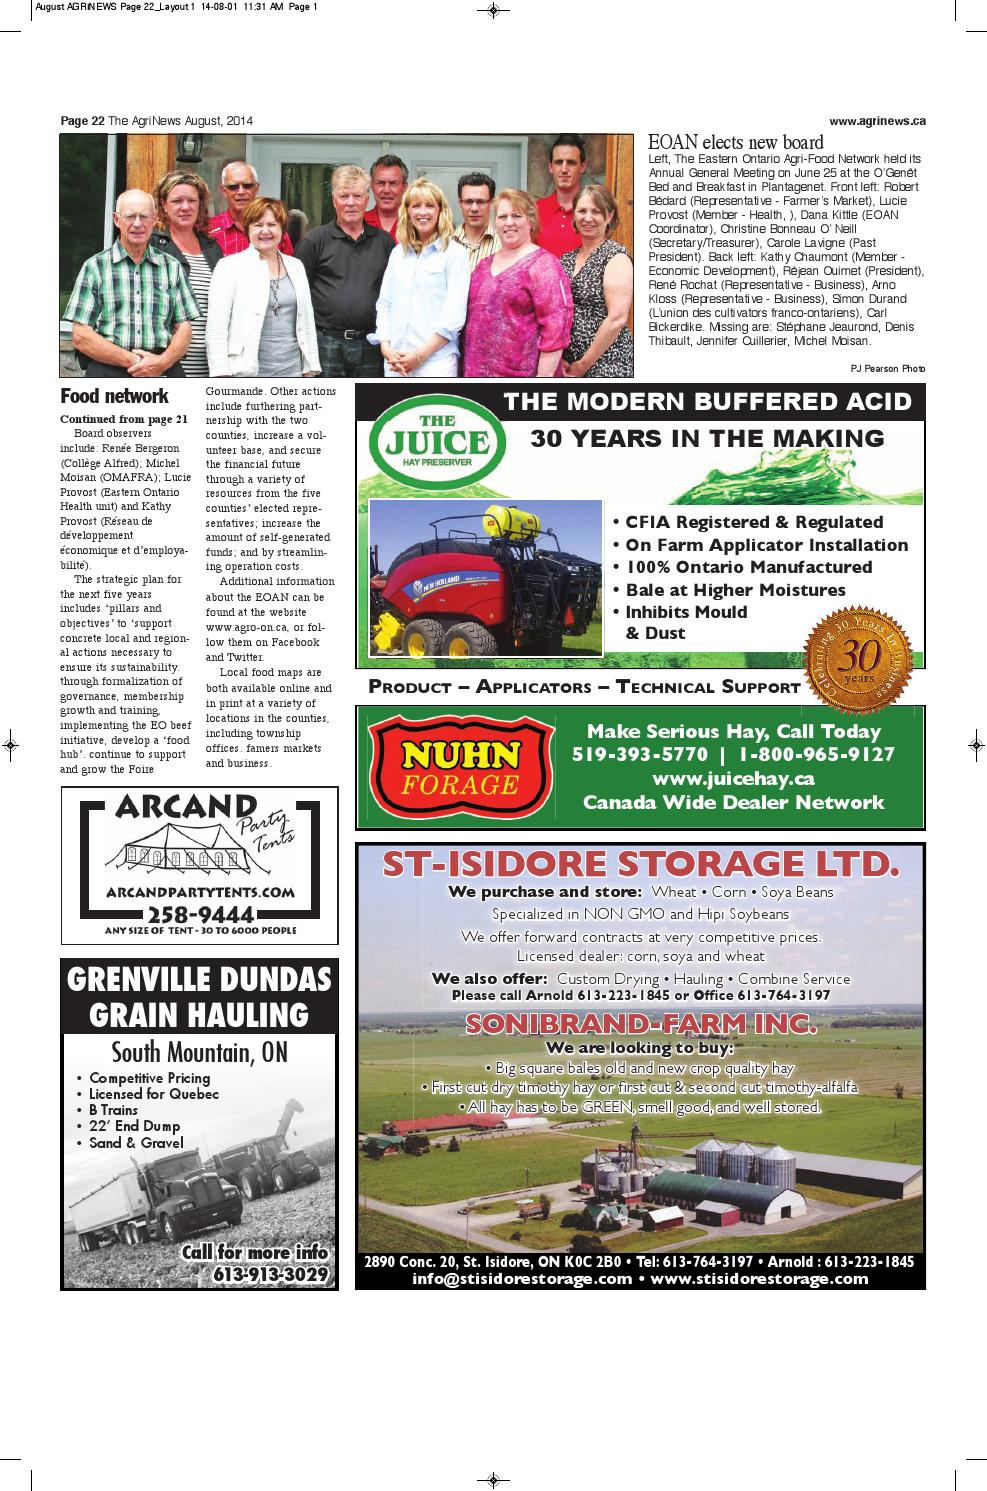 AgriNews August 2014 by Robin Morris - issuu